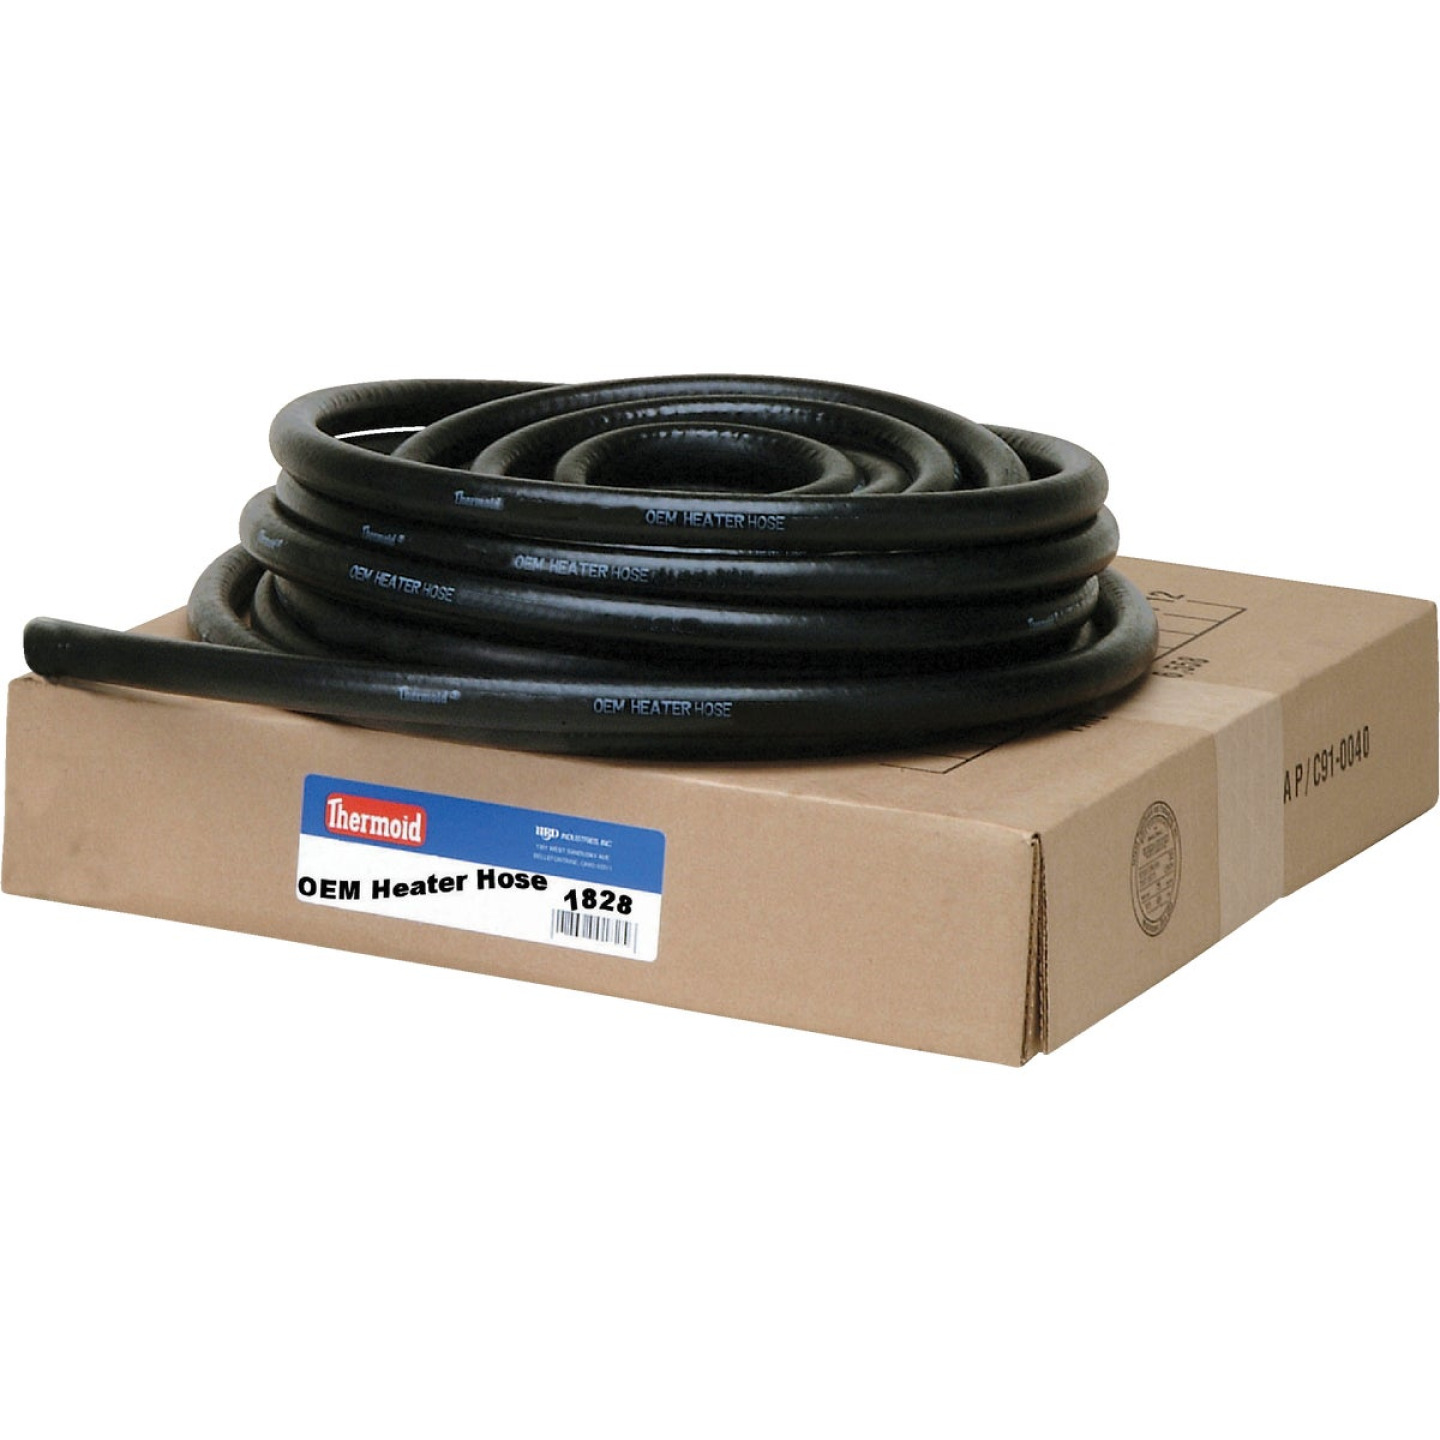 Thermoid 1 In. ID x 50 Ft. L. Bulk Auto Heater Hose Image 1